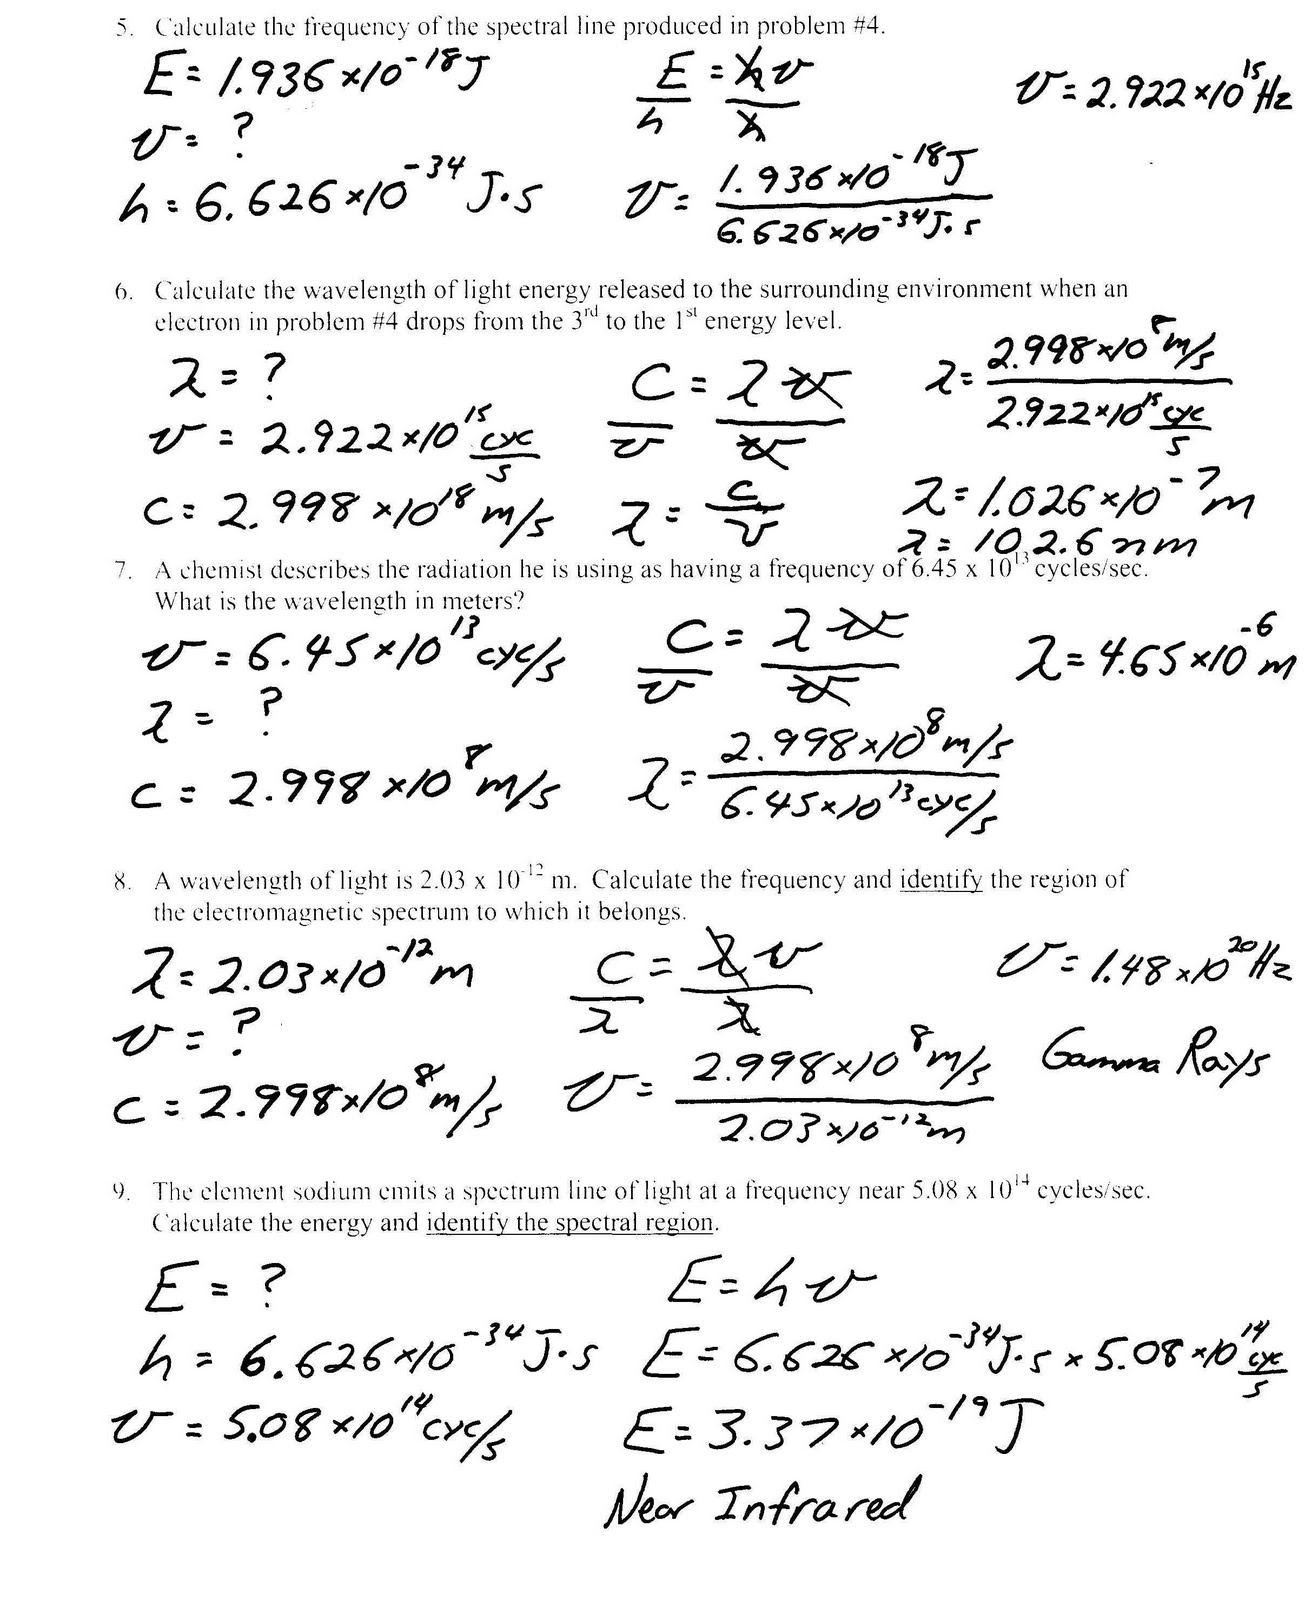 Printables High School Physical Science Worksheets heritage high school chemistry 2010 11 friday april 15 2011